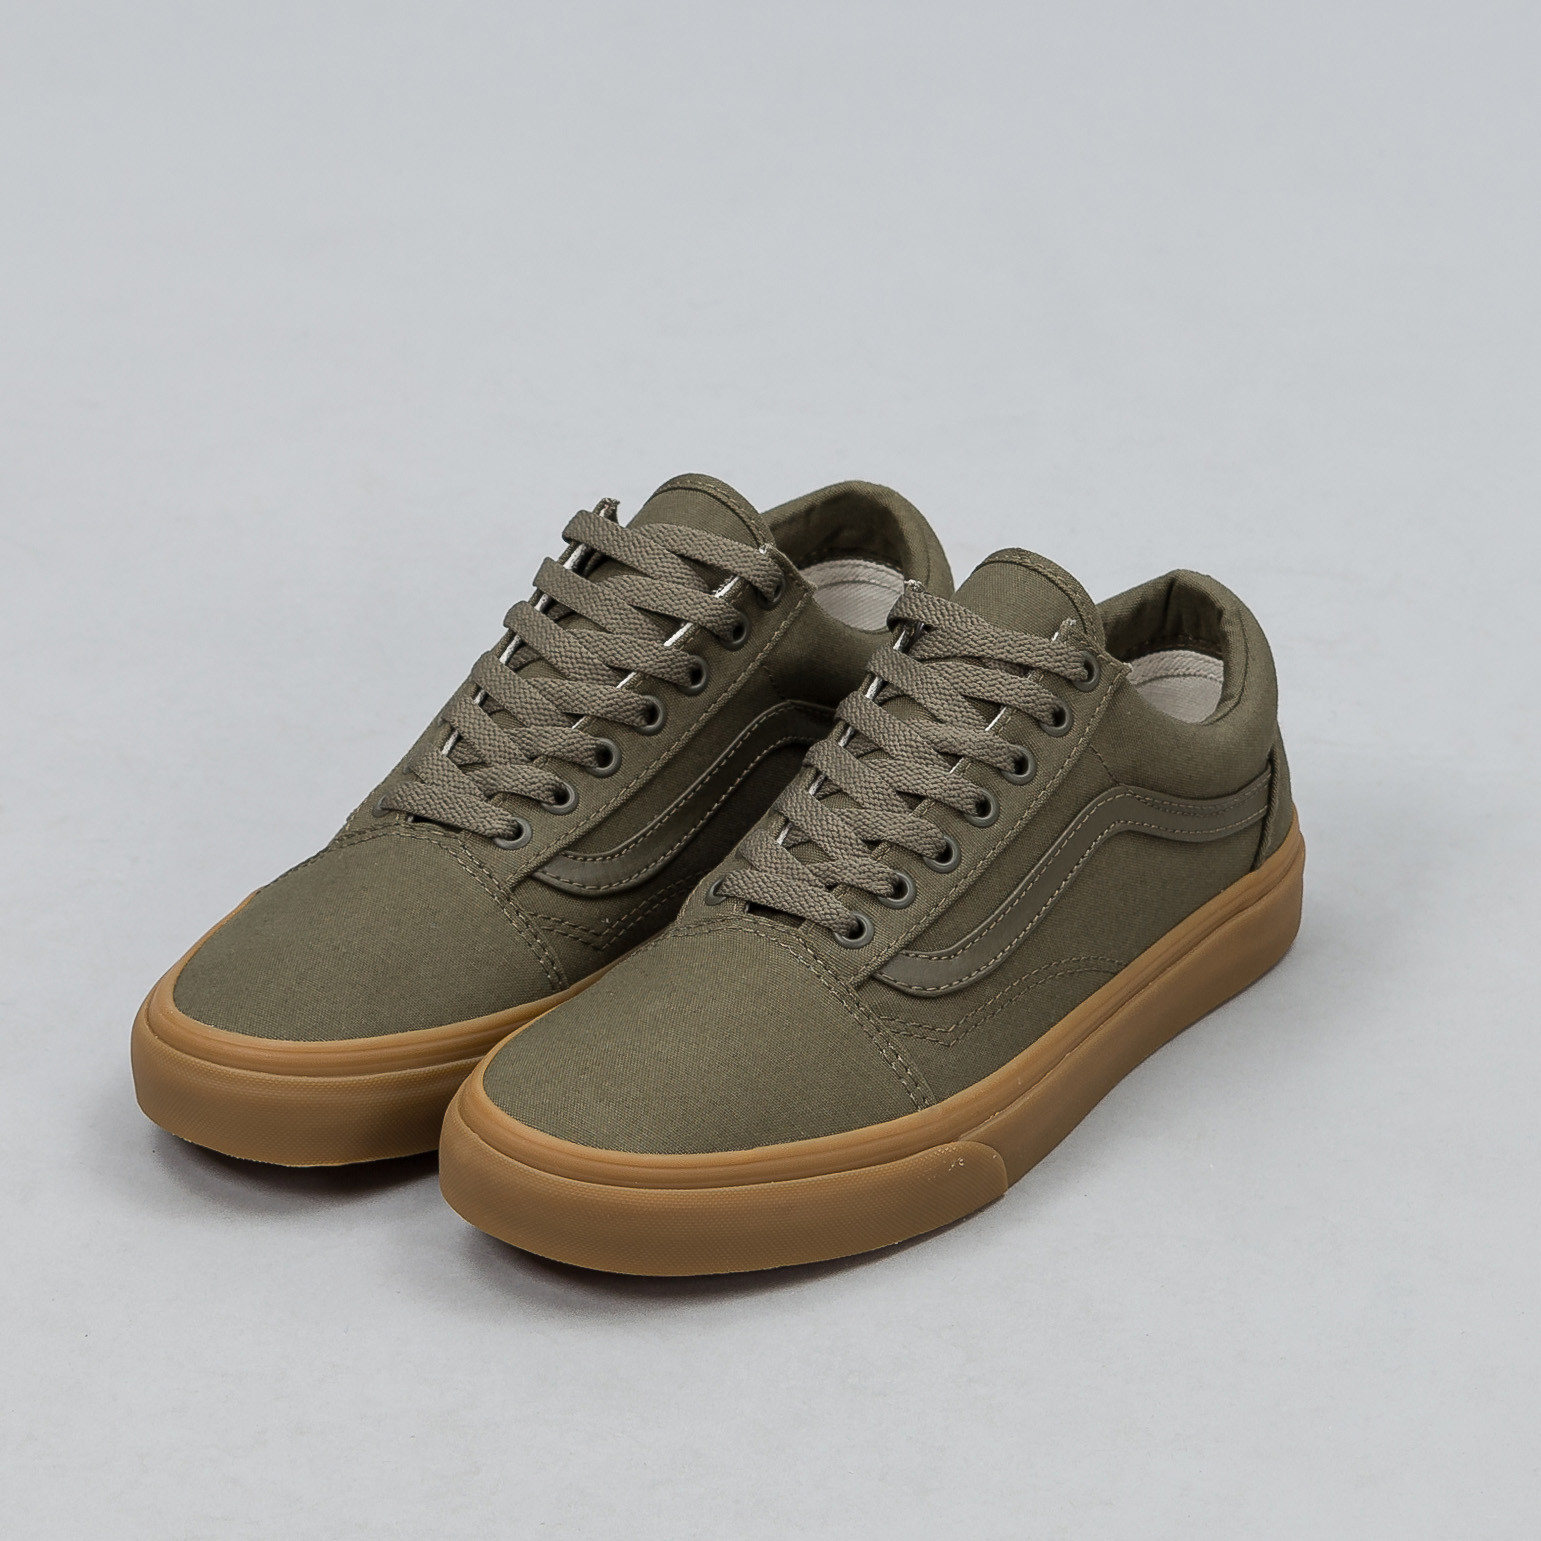 3a6c75b5bd4 Lyst - Vans Canvas Gum Old Skool In Ivy Green for Men